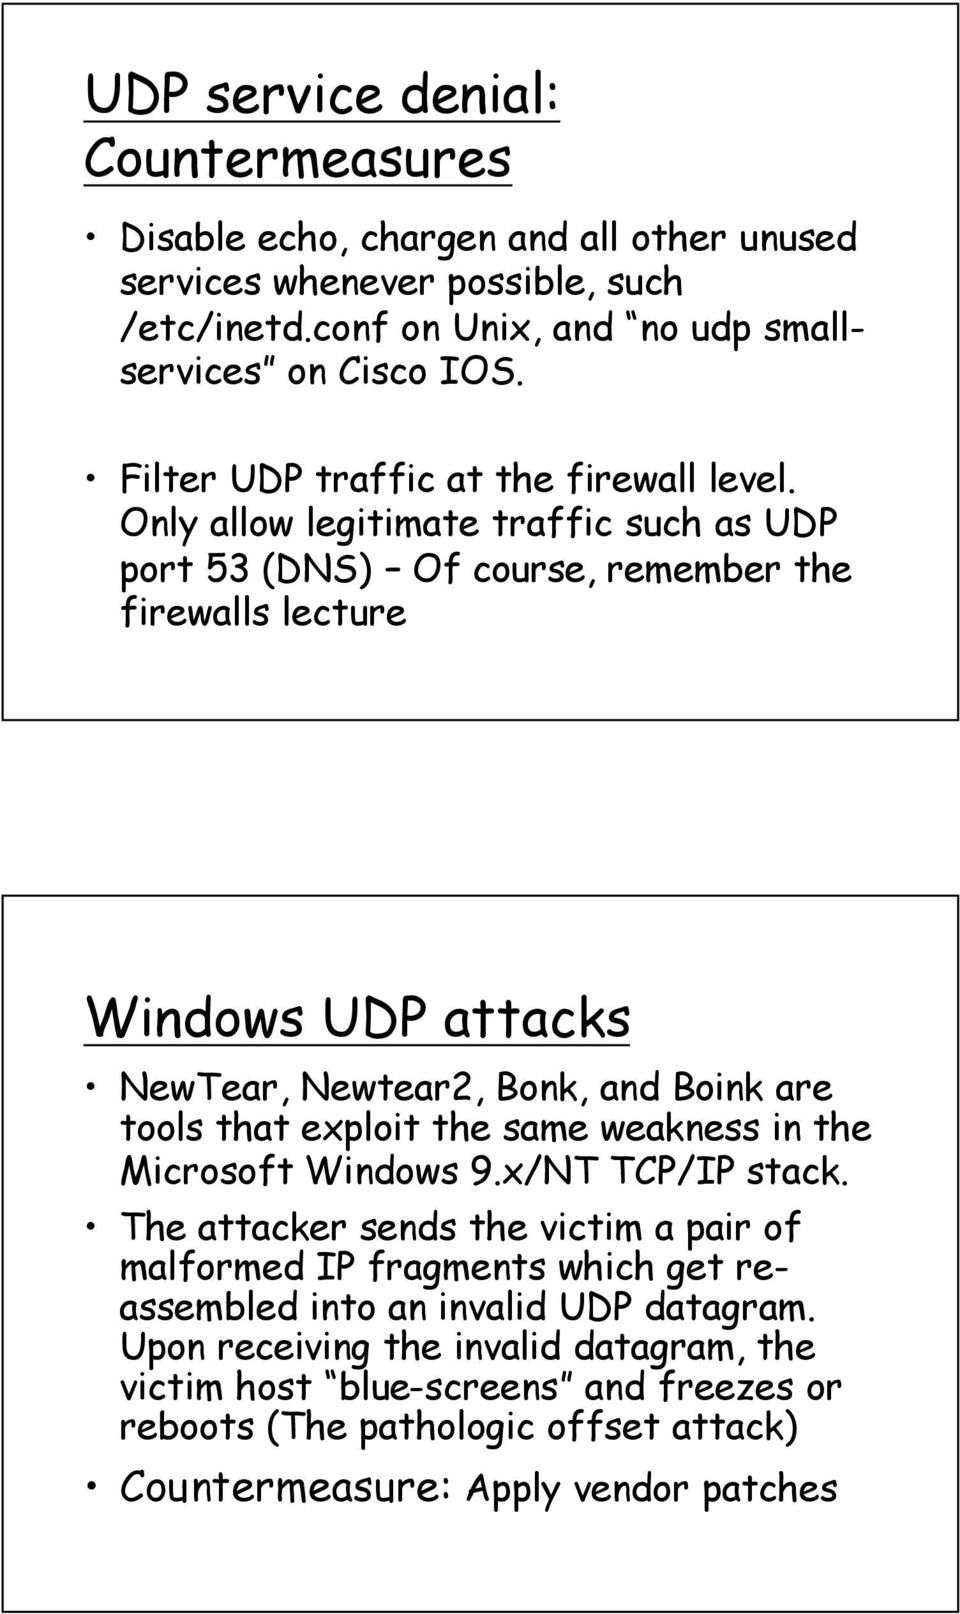 Only allow legitimate traffic such as UDP port 53 (DNS) Of course, remember the firewalls lecture Windows UDP attacks NewTear, Newtear2, Bonk, and Boink are tools that exploit the